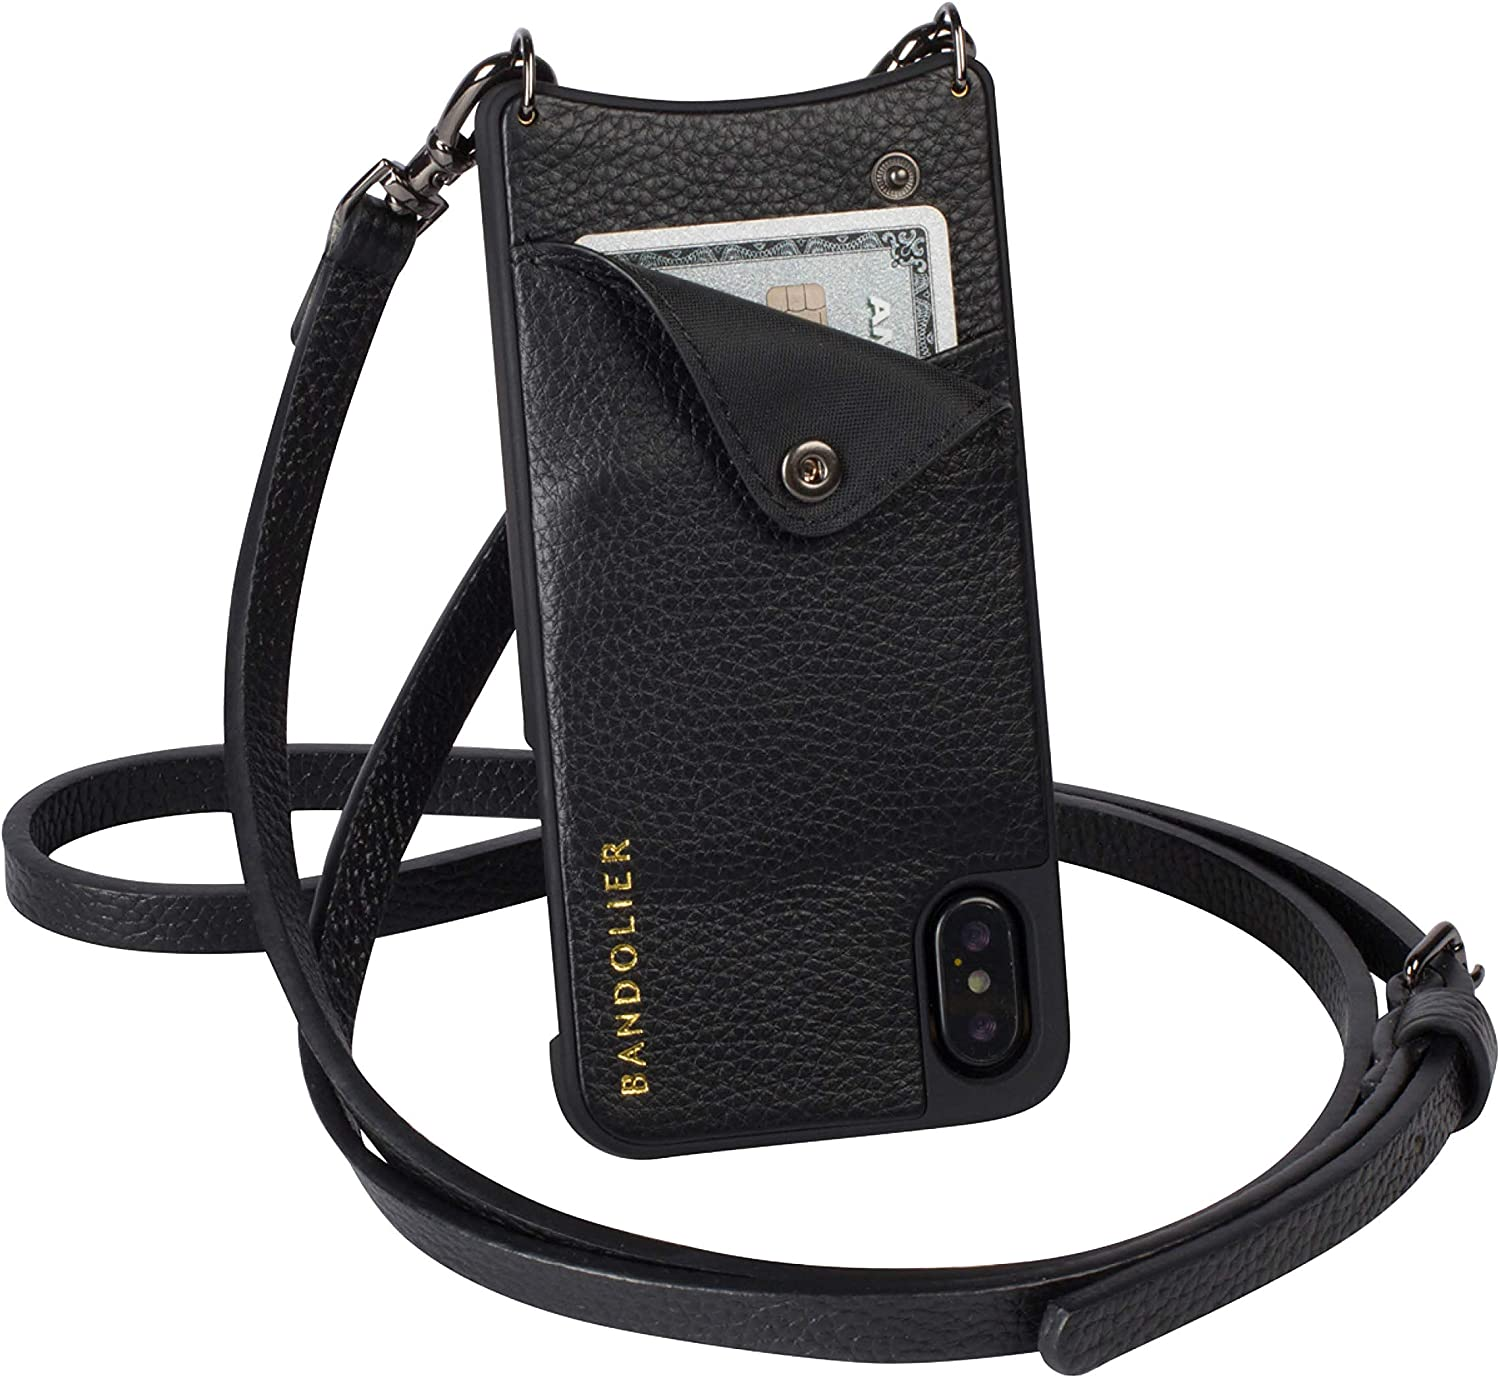 Bandolier Emma Crossbody Phone Case and Wallet - Black Leather with Pewter Detail - Compatible with iPhone Xs Max Only